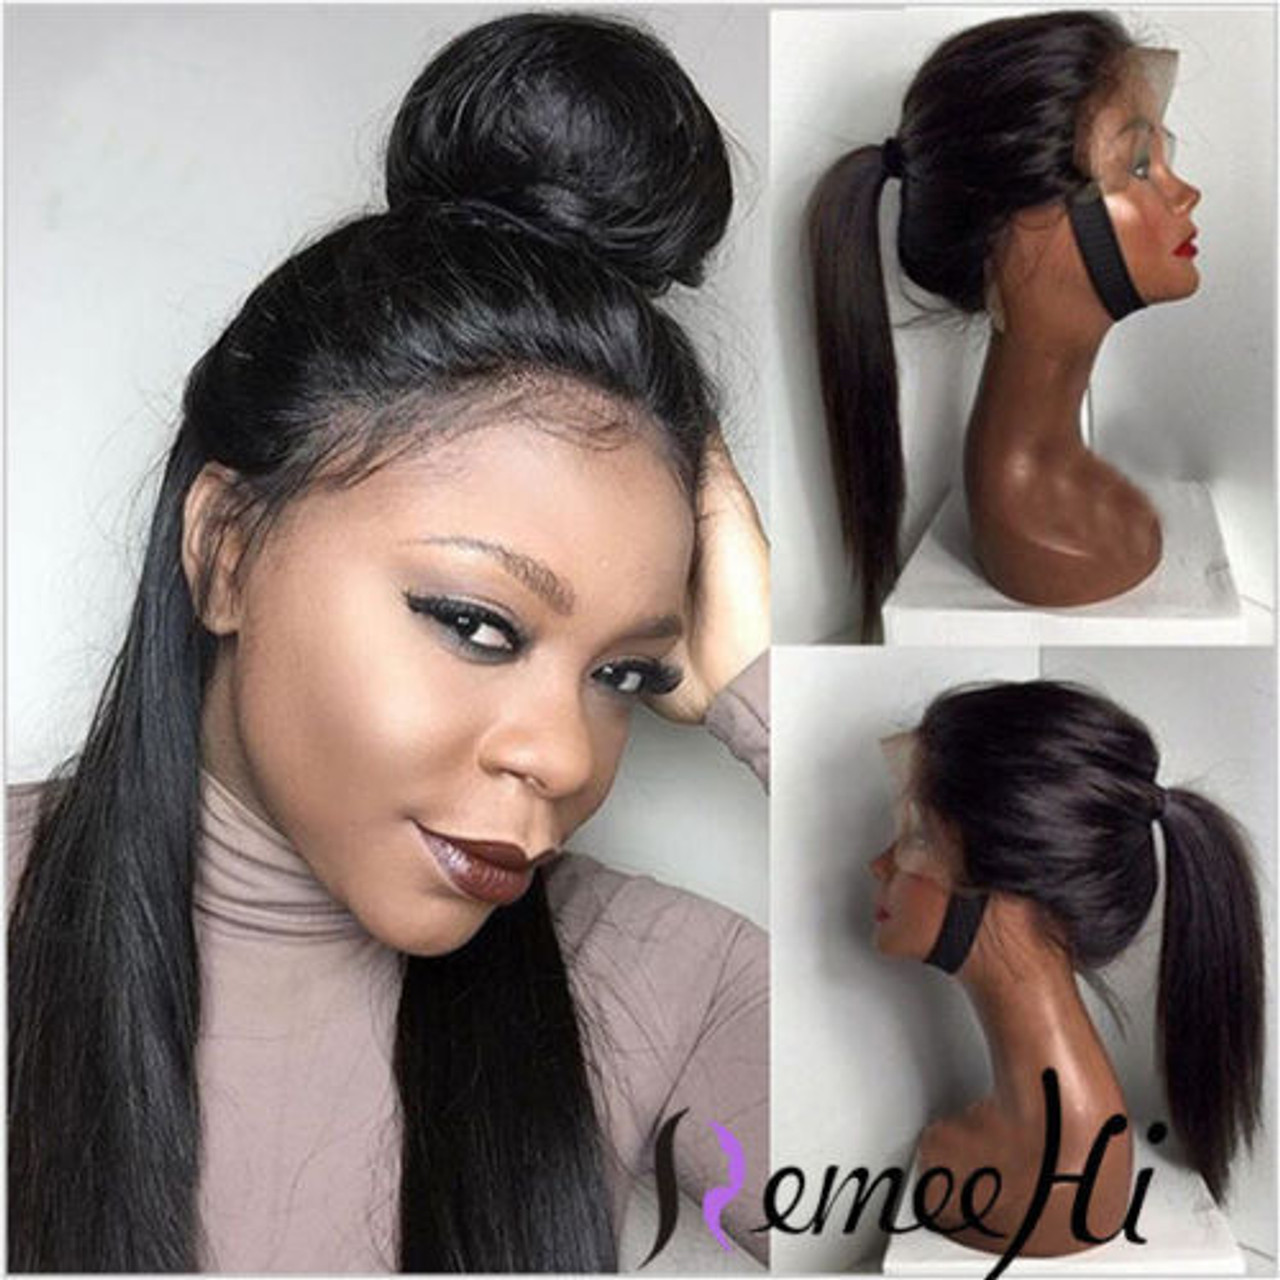 Remeehi silky straight full lace wig 100%